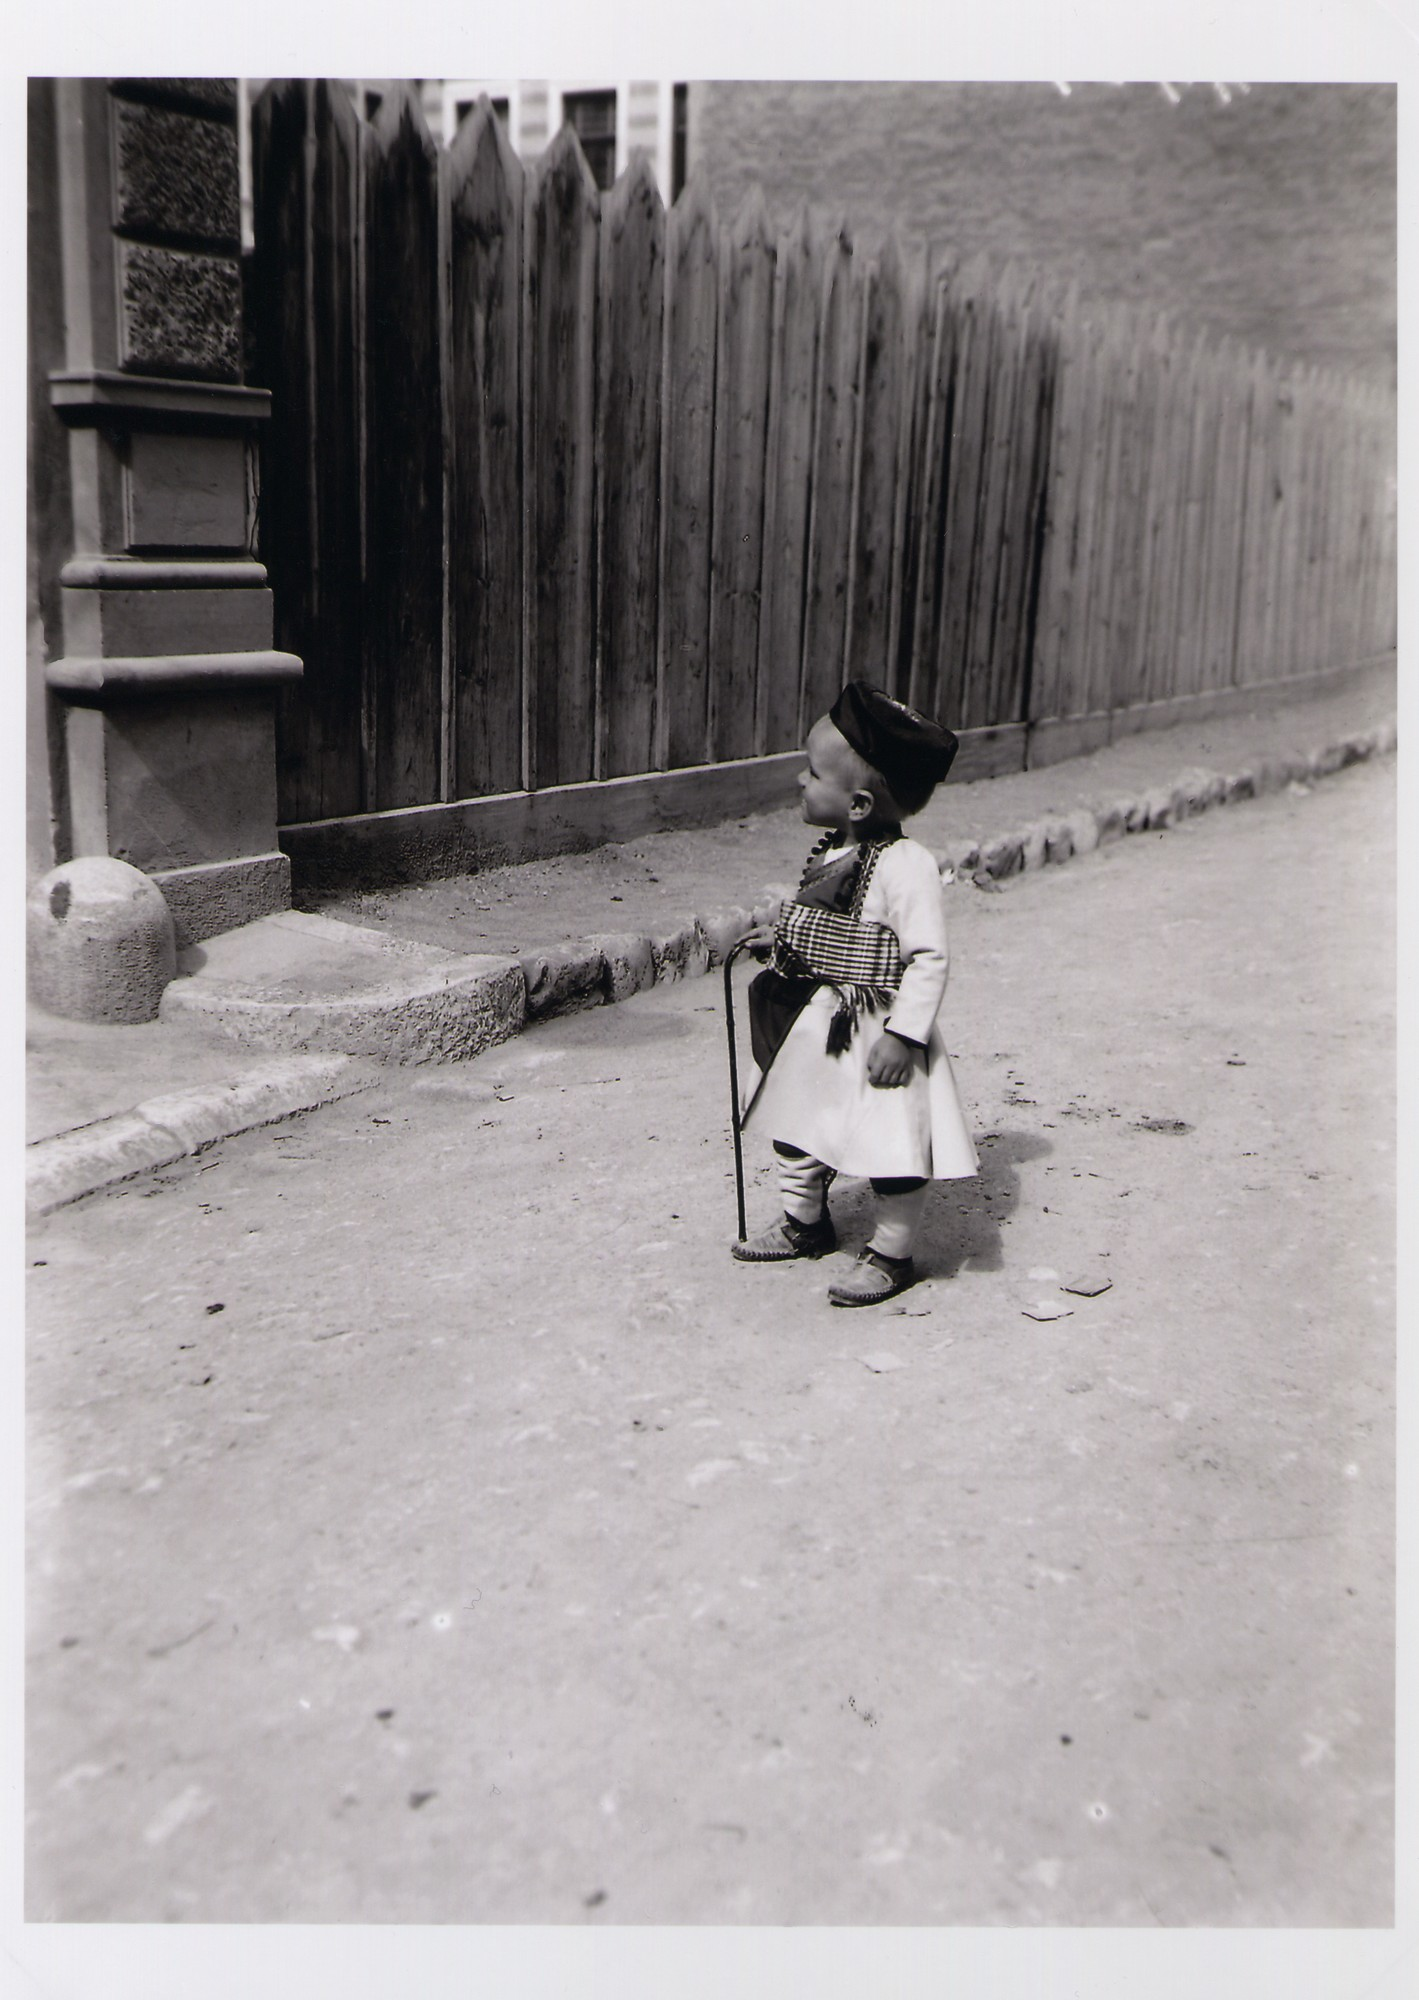 Little boy in a street, © The National Museum of Bosnia and Herzegovina